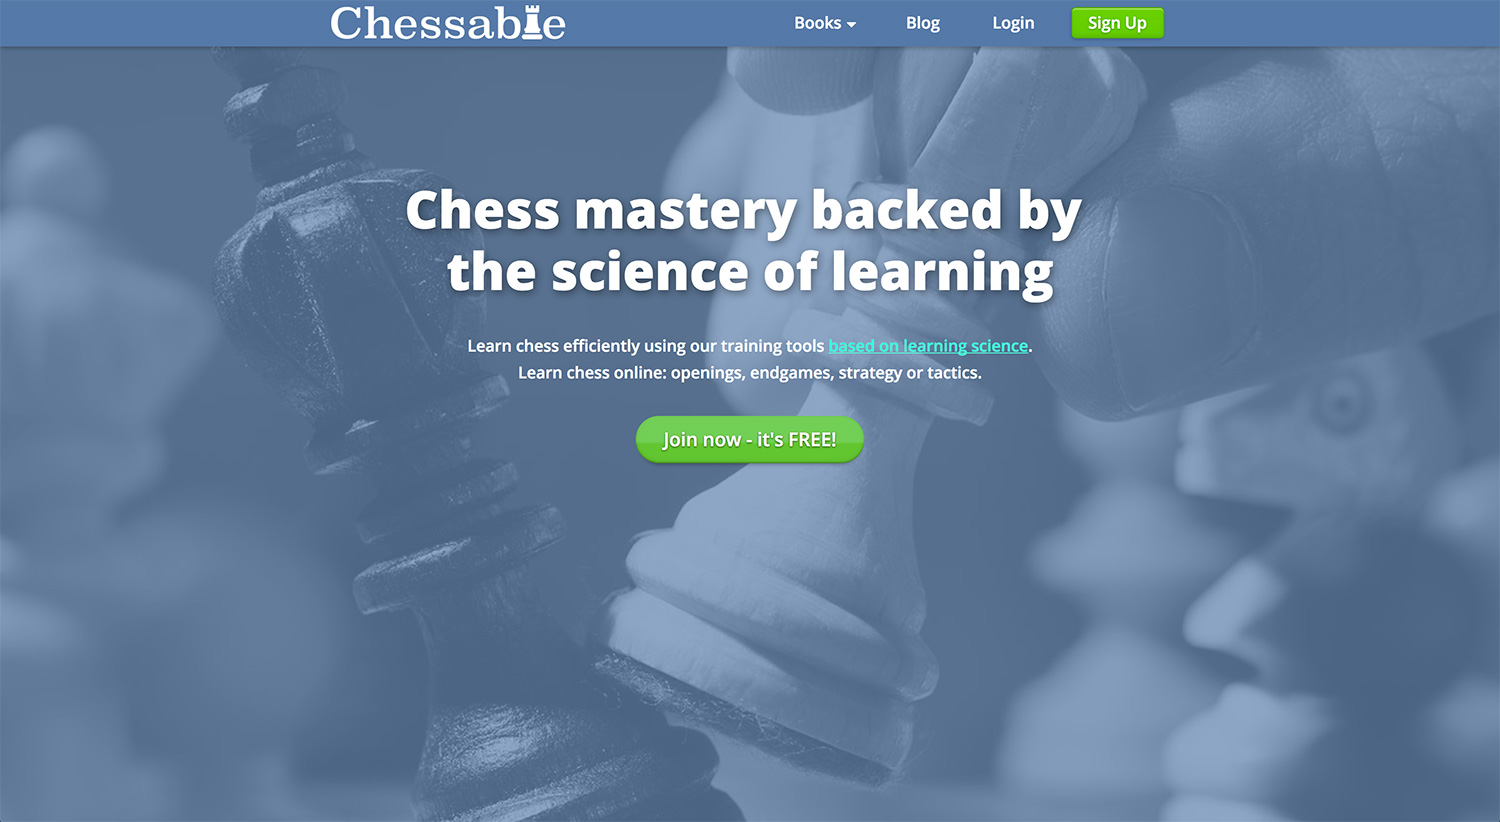 Chessable site